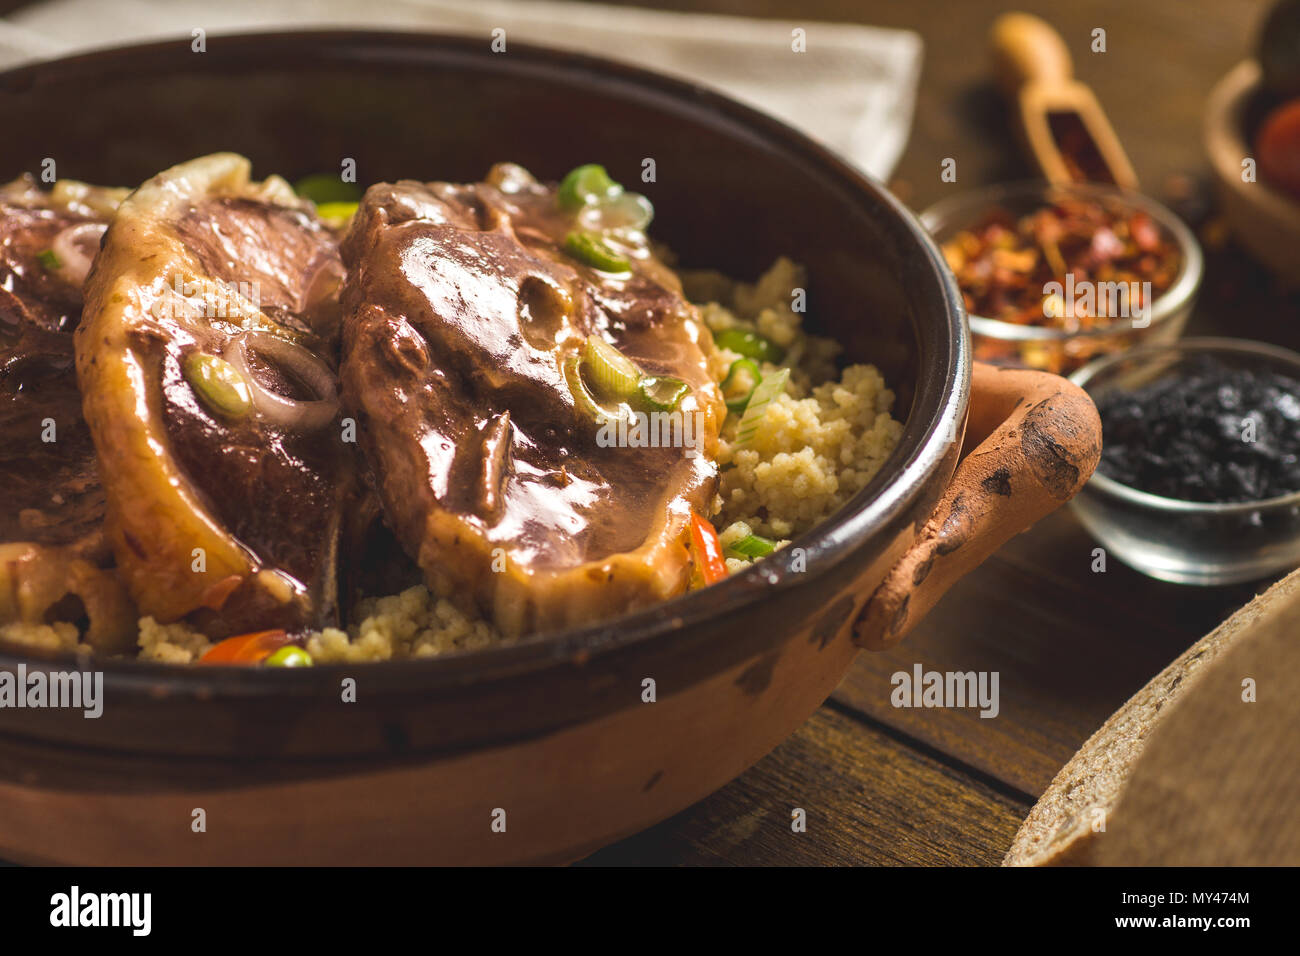 Roasted Lamb Loin Chops with Couscous and Soybean in Rustic Clay Dish - Stock Image